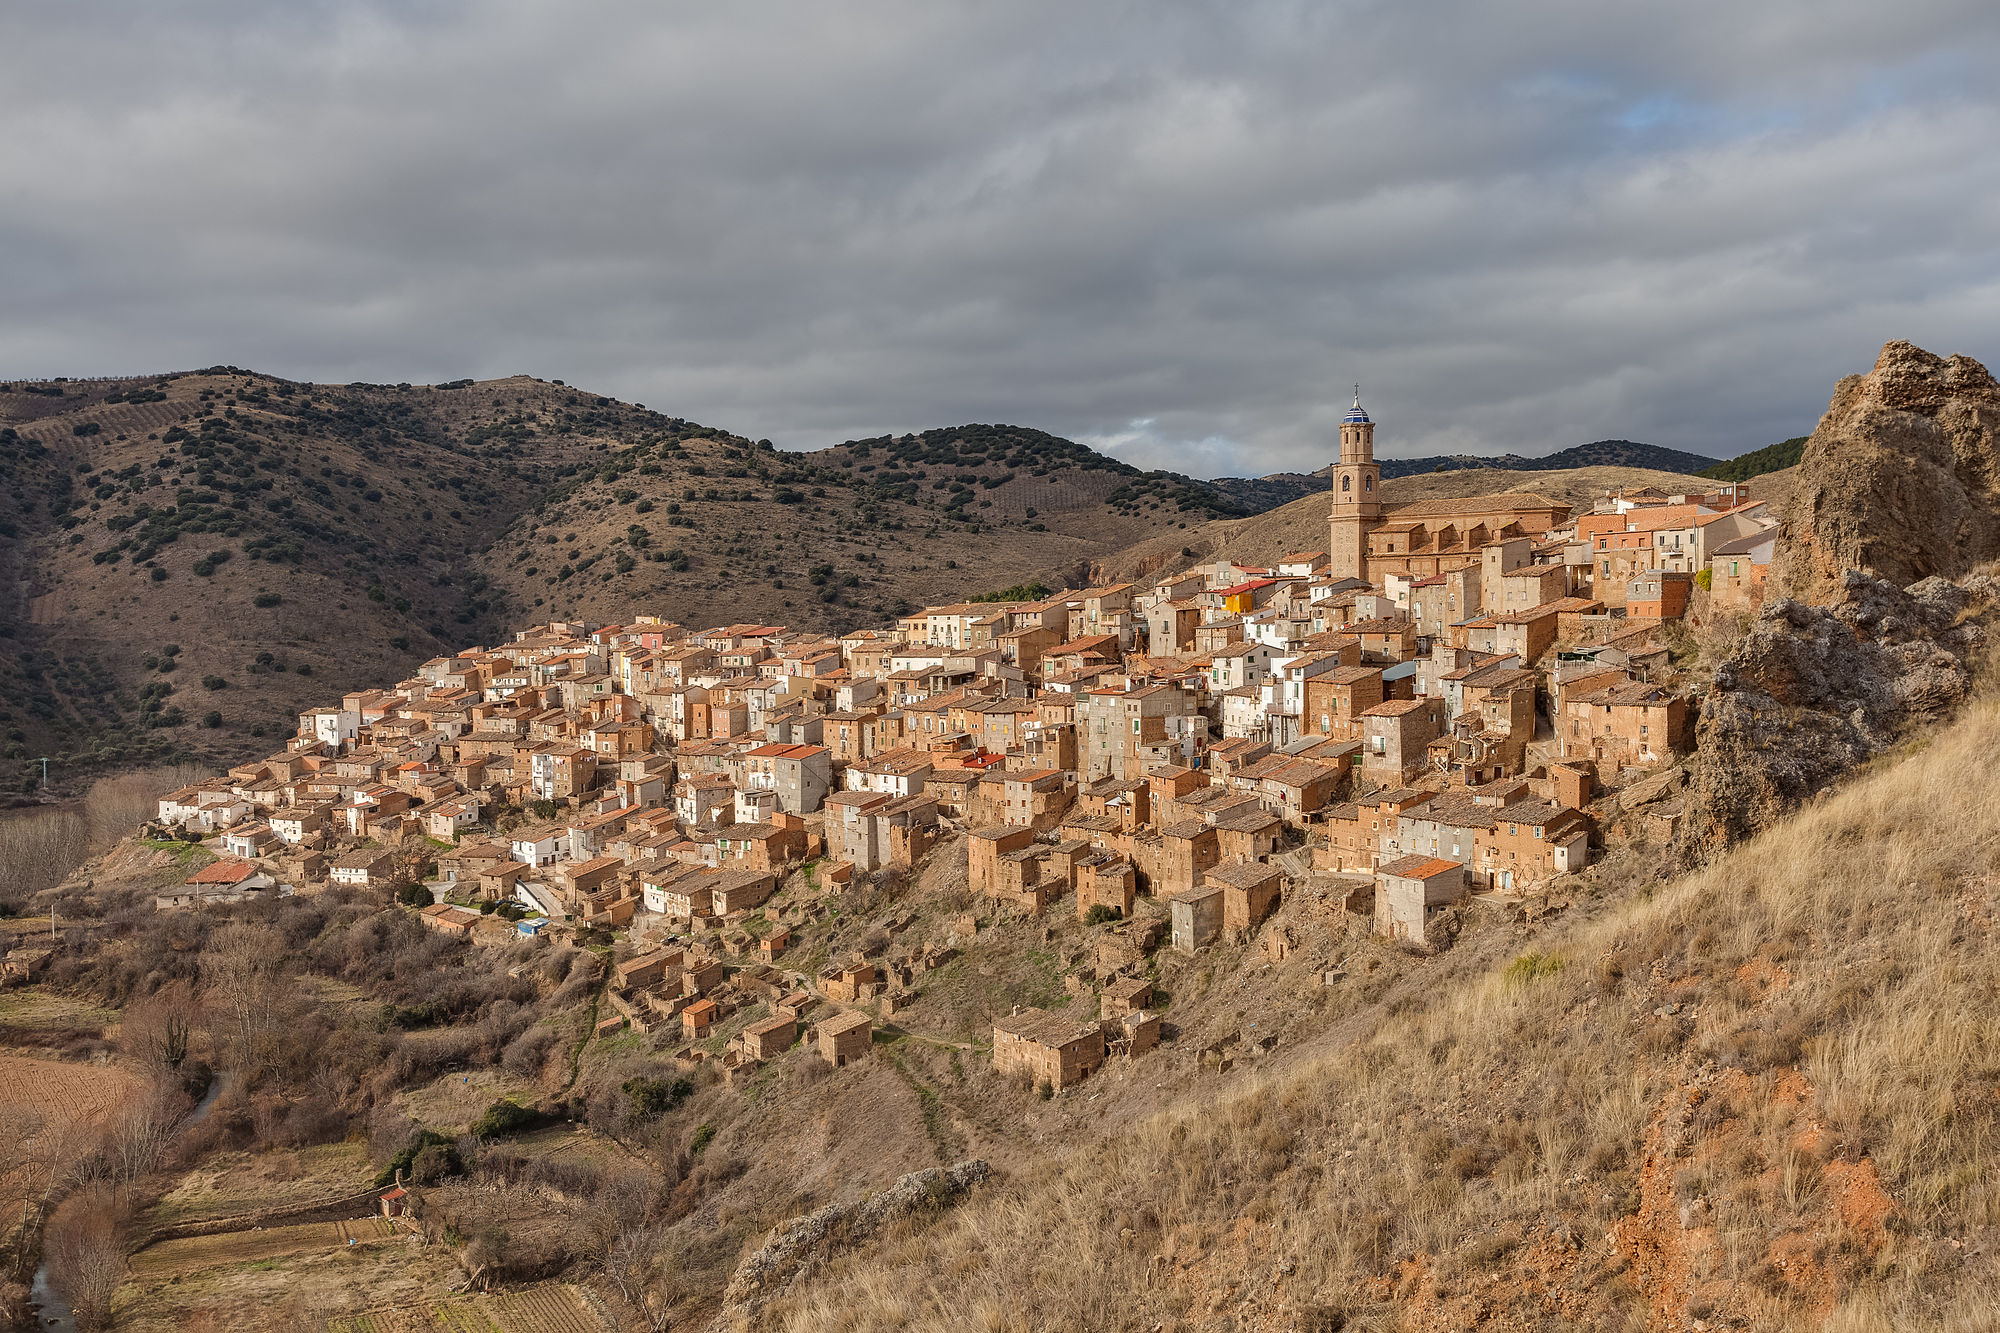 View of the small village of Moros, province of Zaragoza, Aragon, Spain. The whole village of Moros lies on a hill, with the most relevant buildings in the top (church and former town hall), the residences in the middle and the sheep pens at the bottom. The current population of Moros is 441 people (35% of the population one century ago, that's why many houses are abandoned).